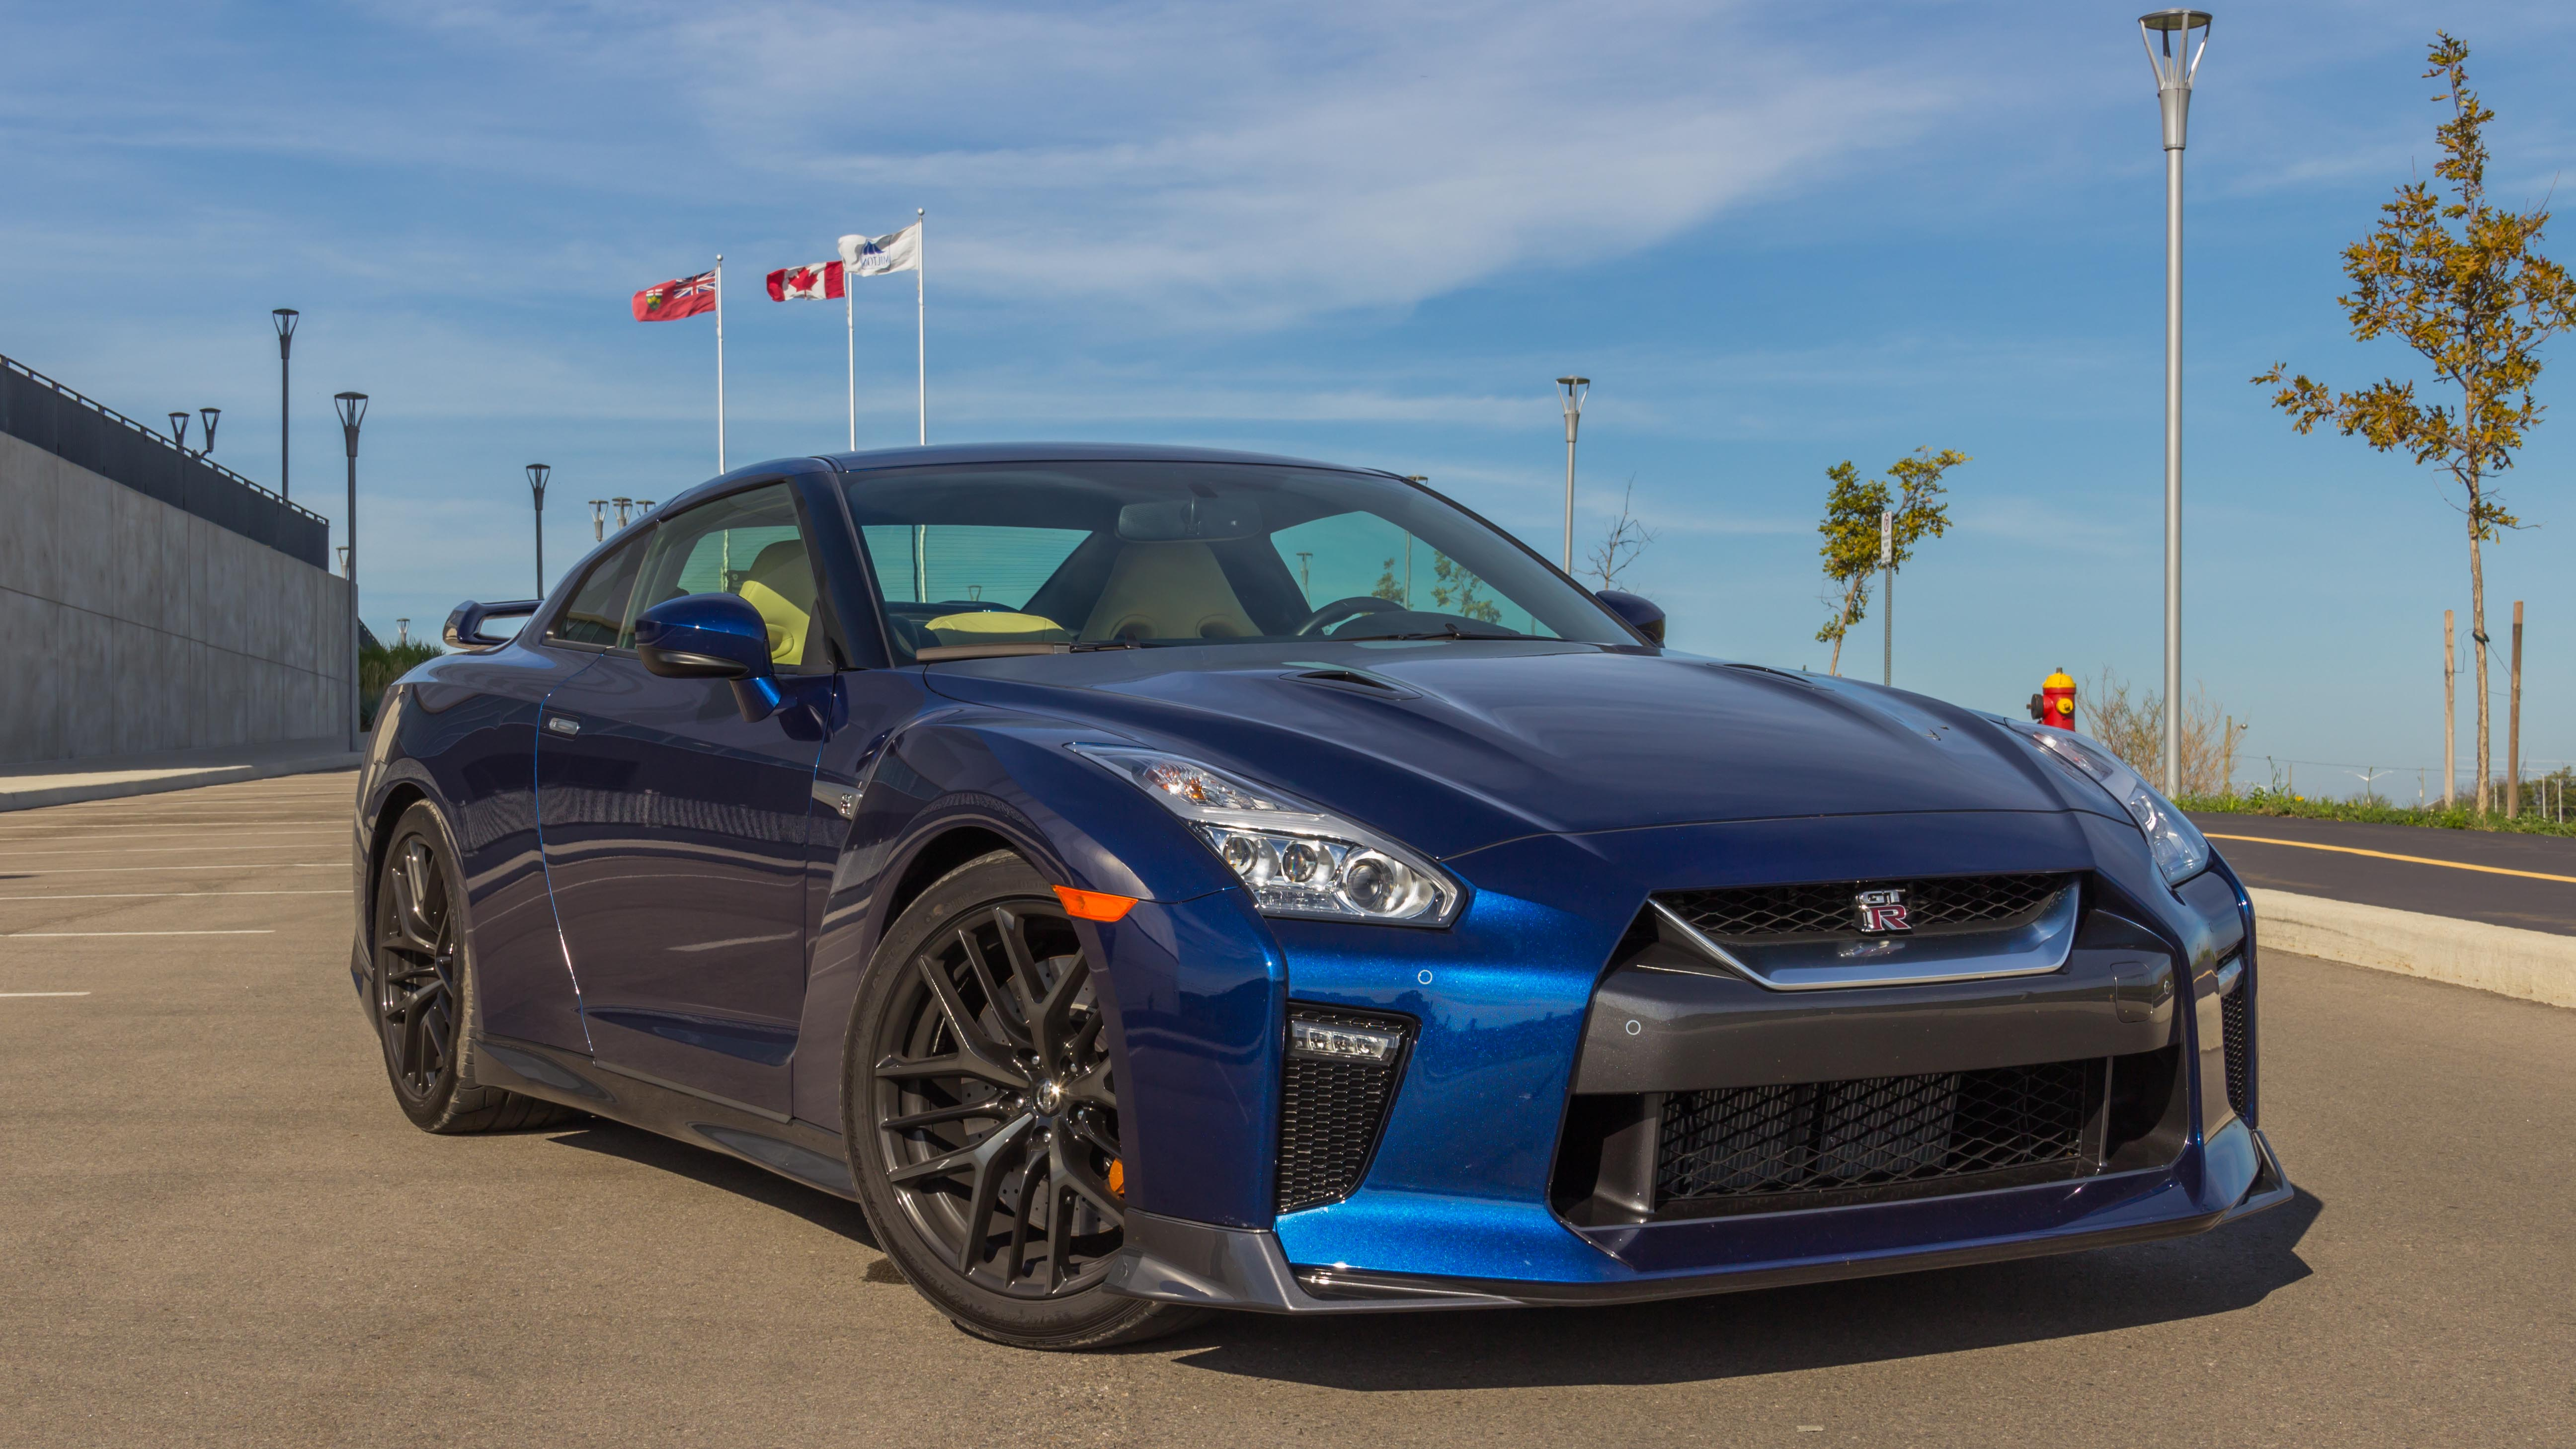 2017 nissan gtr blue new car release date and review 2018 amanda felicia. Black Bedroom Furniture Sets. Home Design Ideas